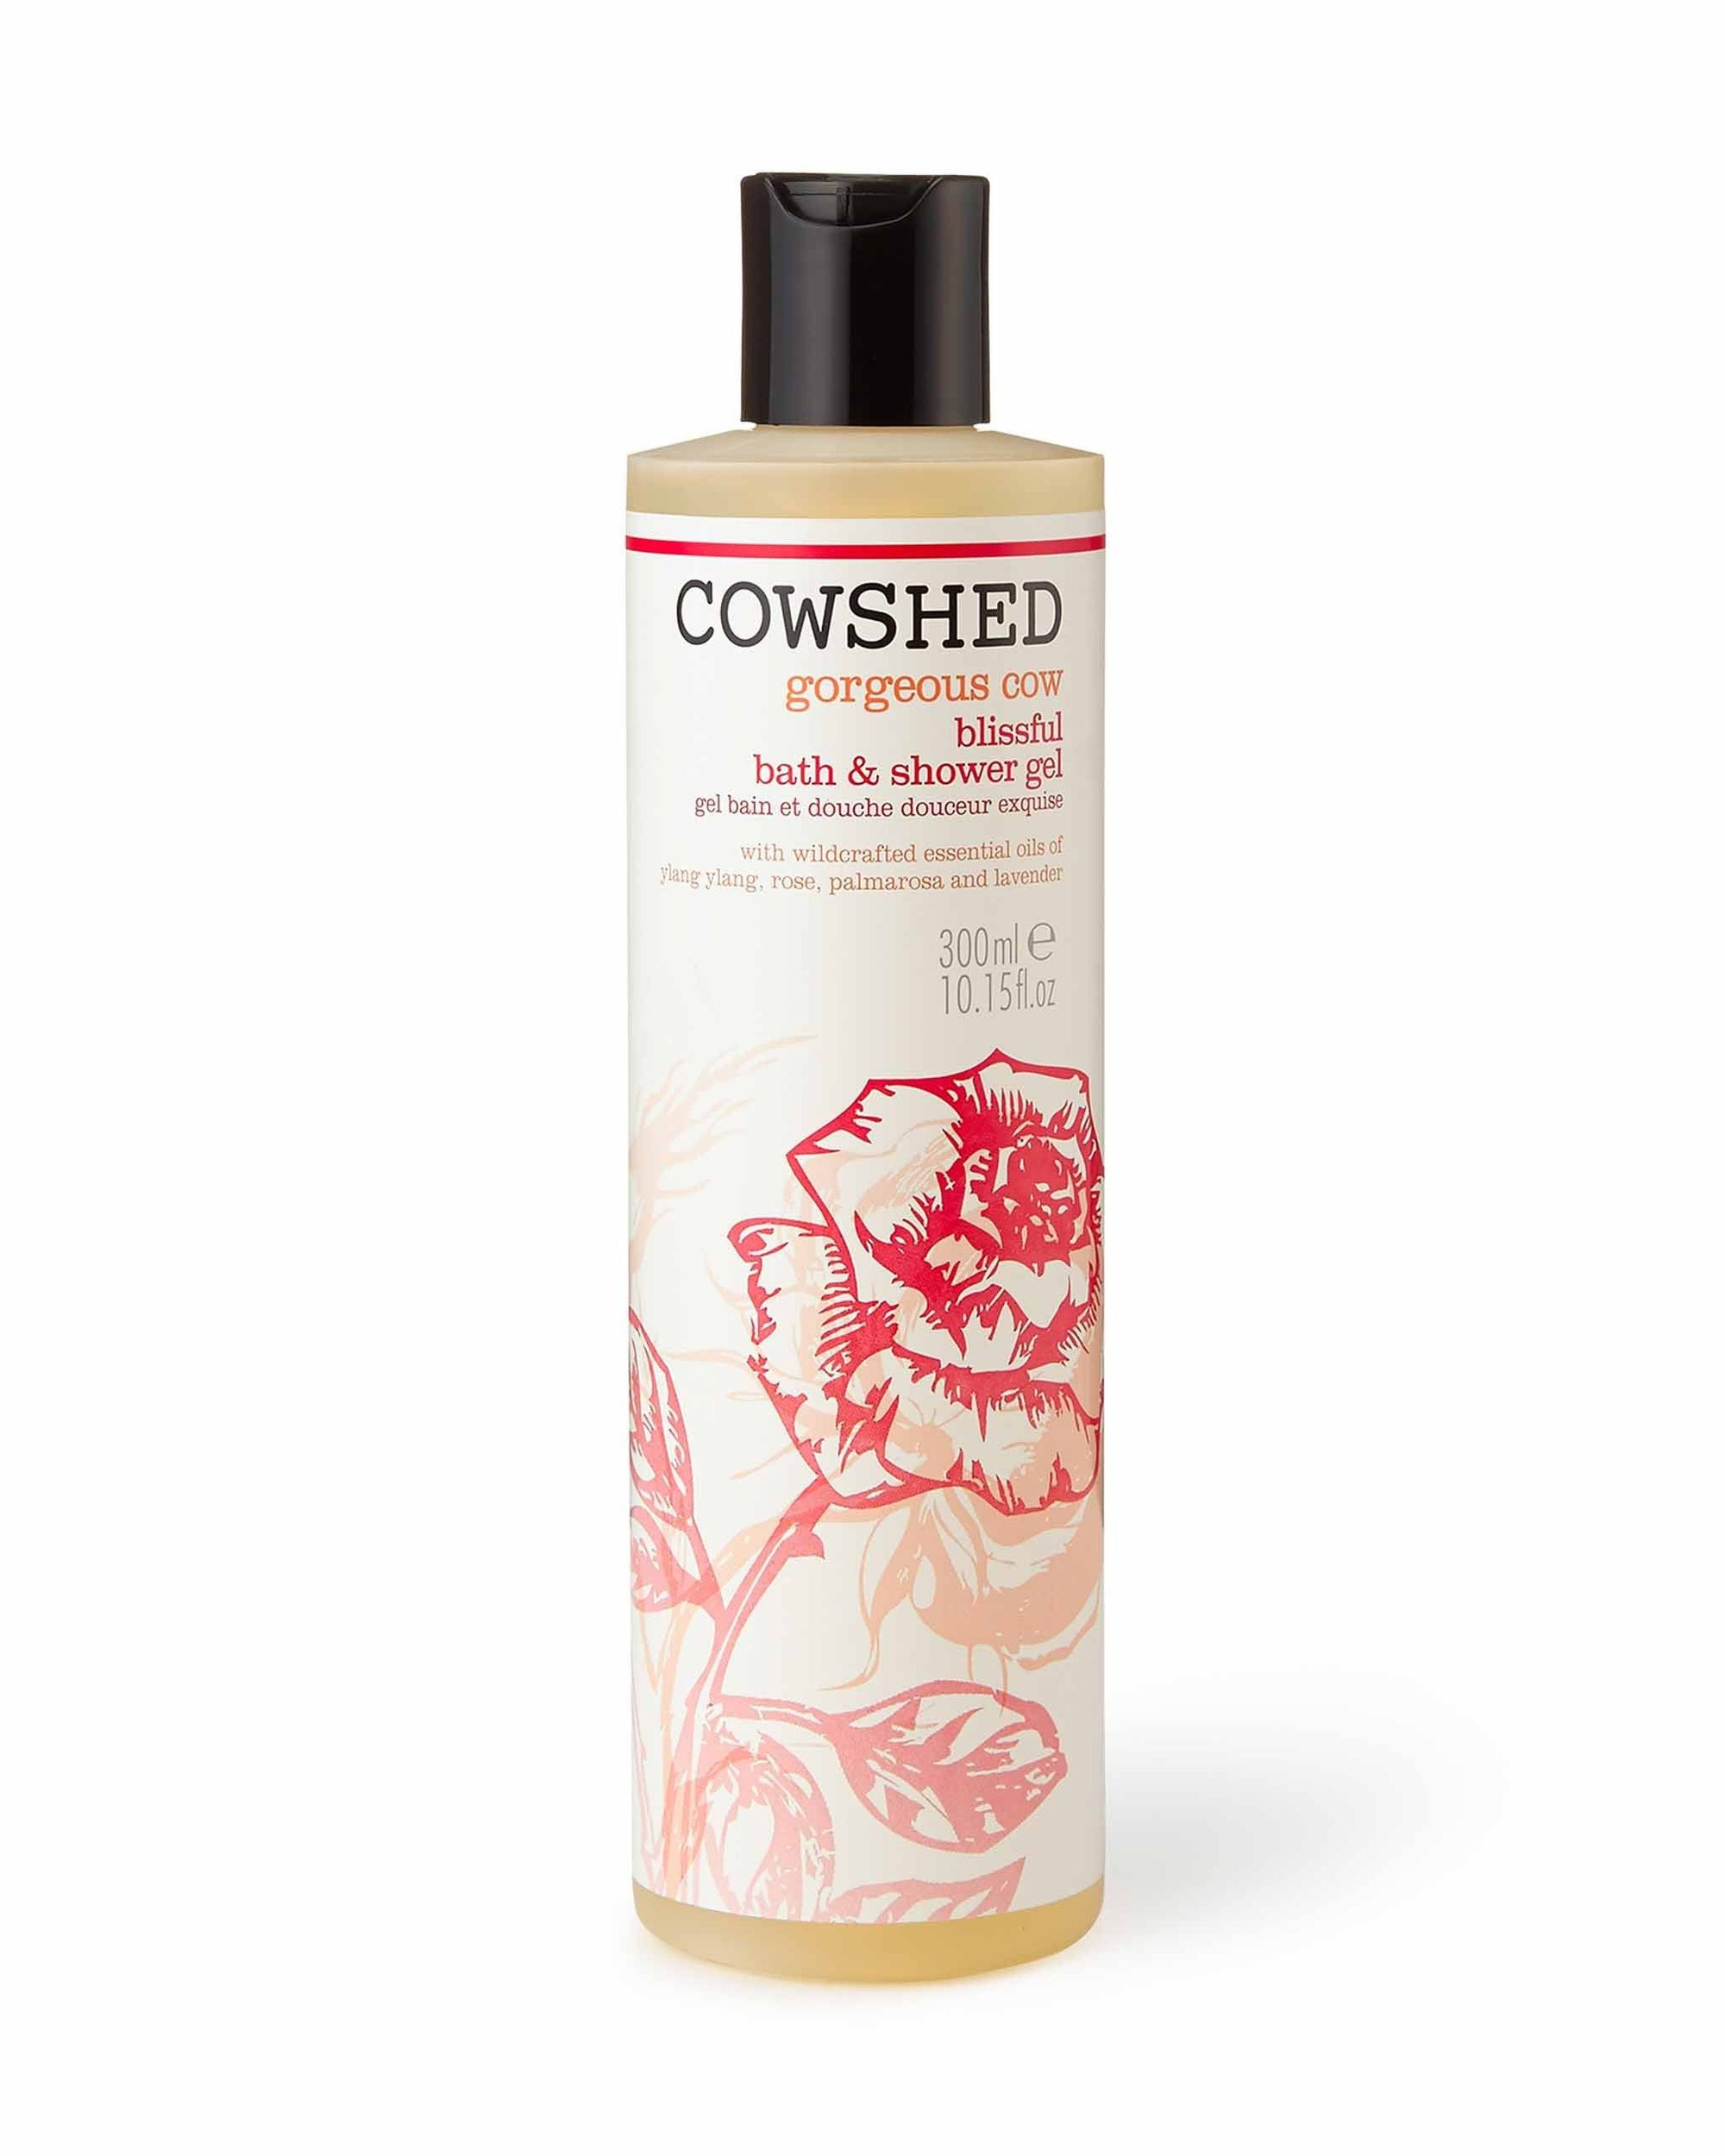 Gorgeous Cow Blissful Bath & Shower Gel (300ml) Cowshed - BouChic